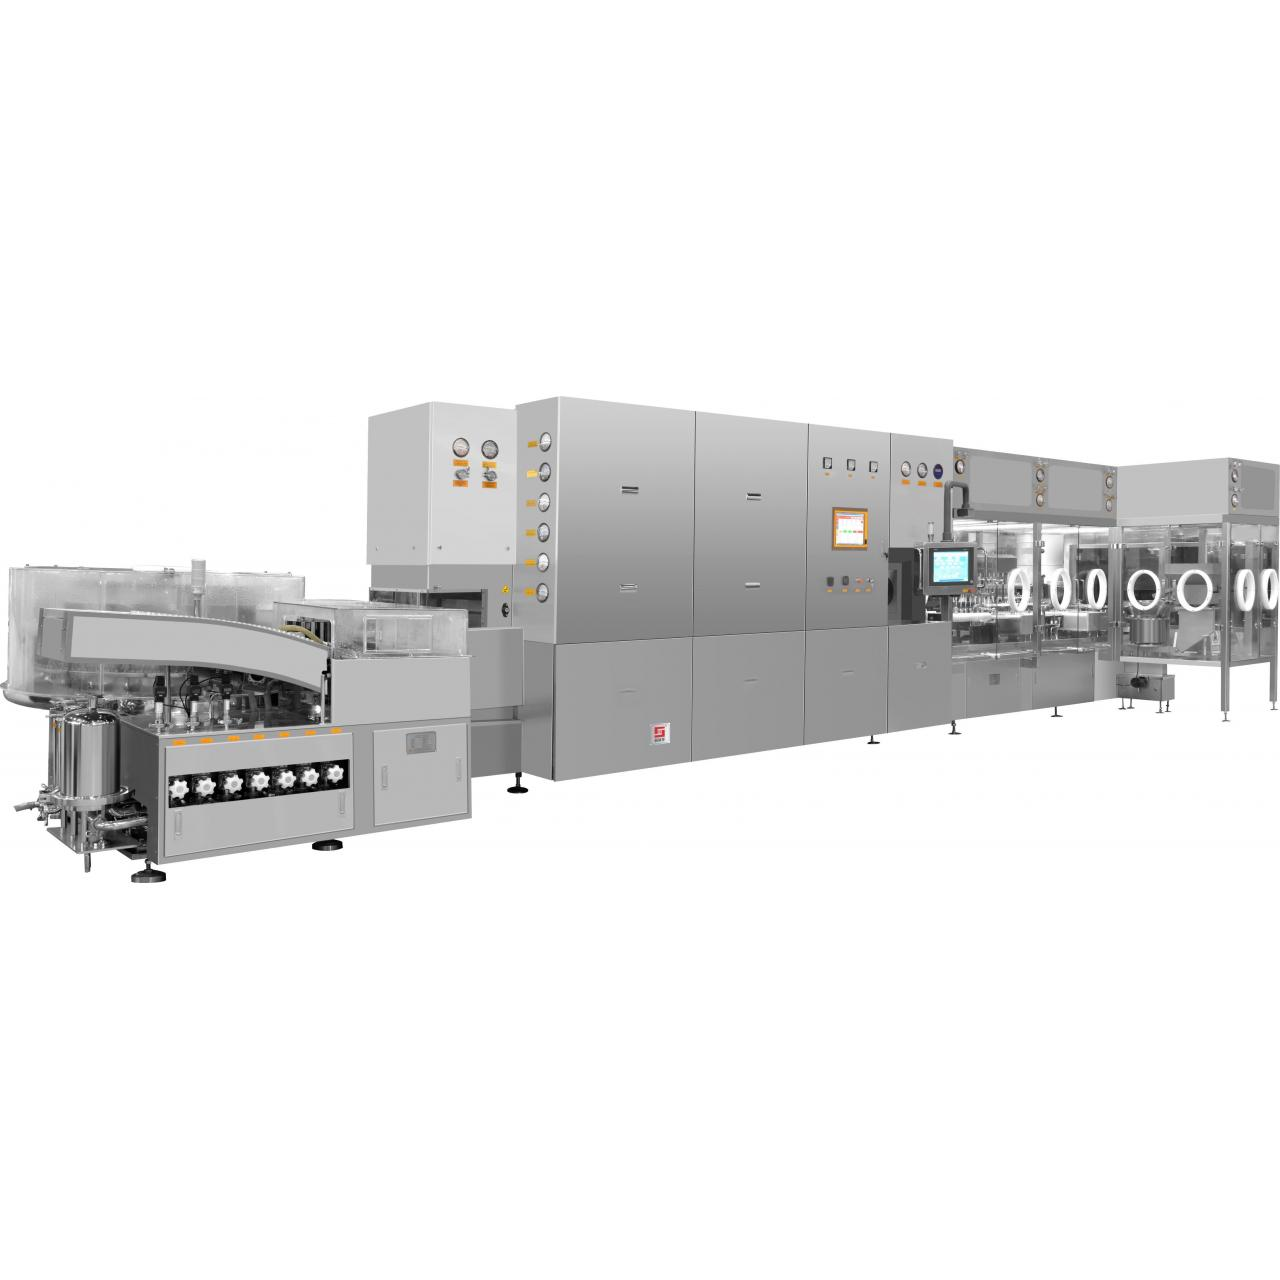 GLX2-25 Model Vial Liquid Washing-Drying-Filling-Stoppling Production Line